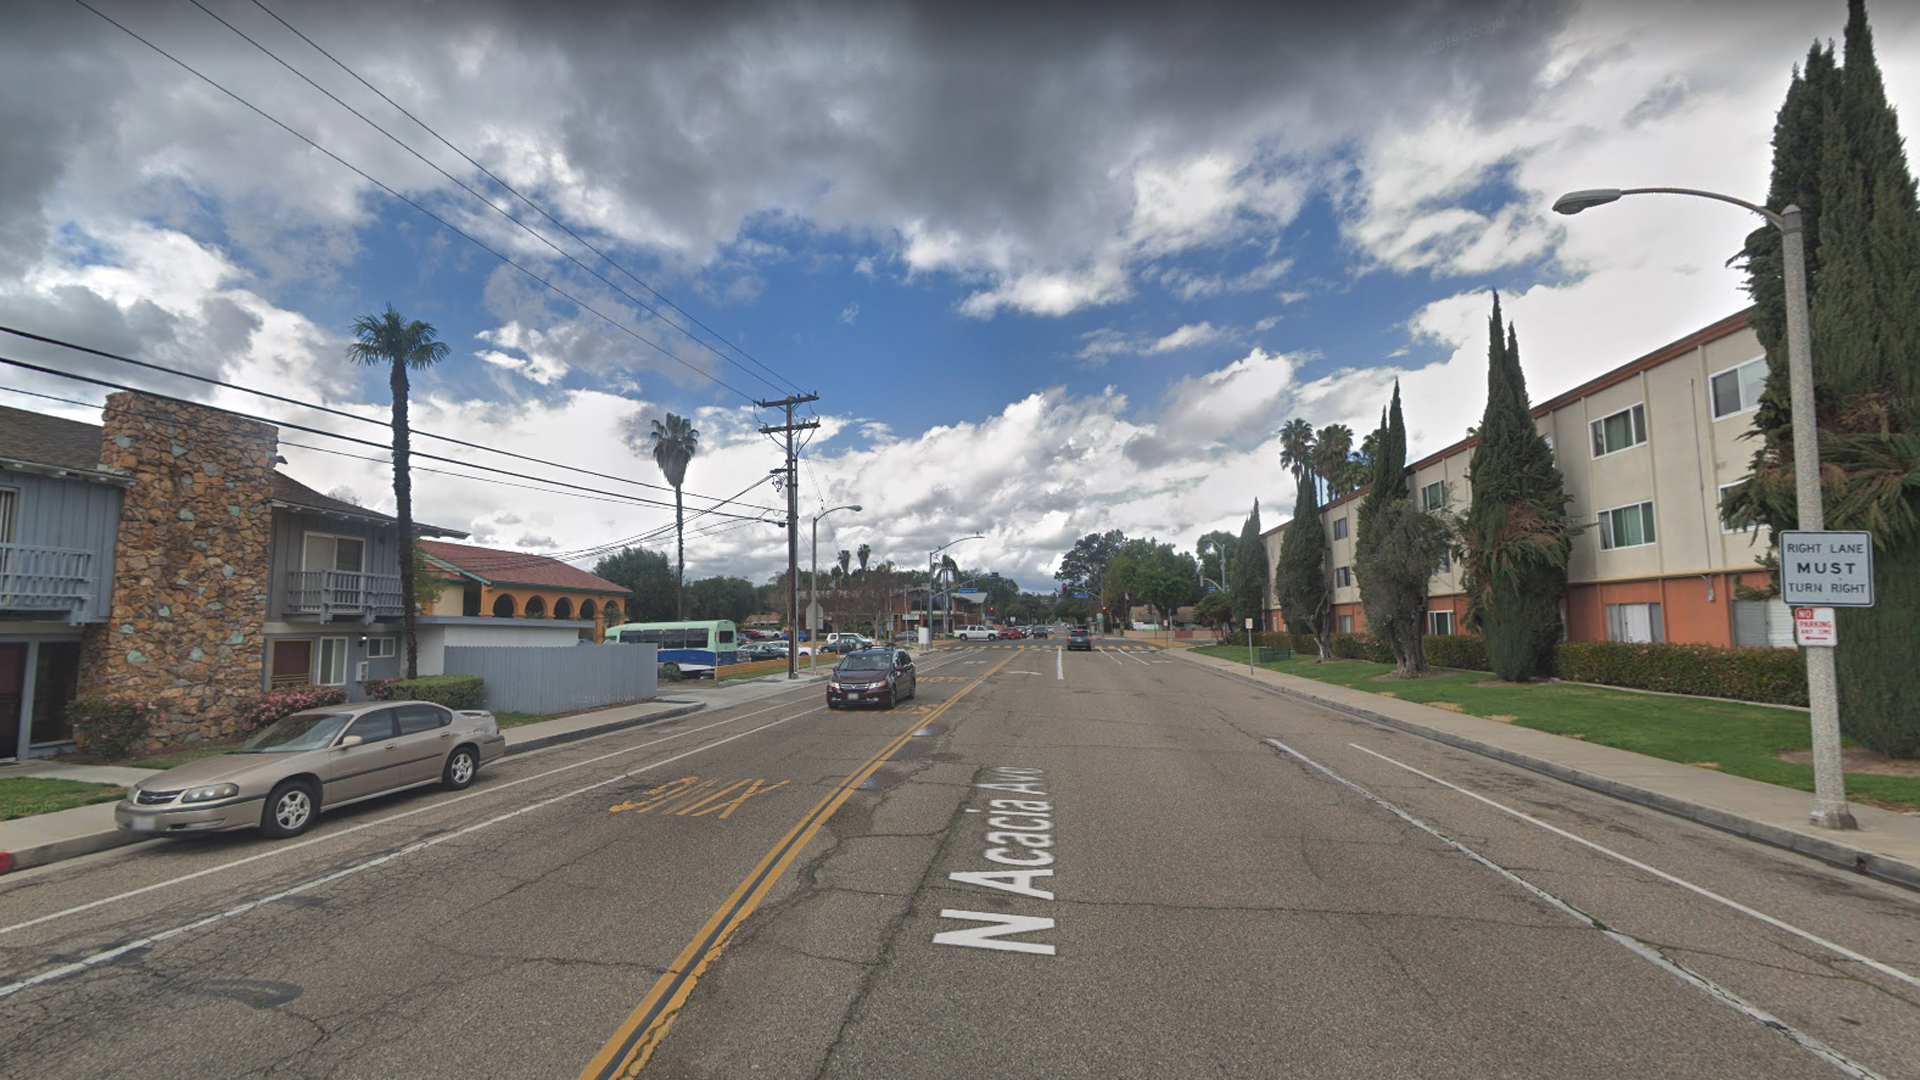 The 400 block of North Acacia Avenue in Fullerton is seen in an image from Google Maps.